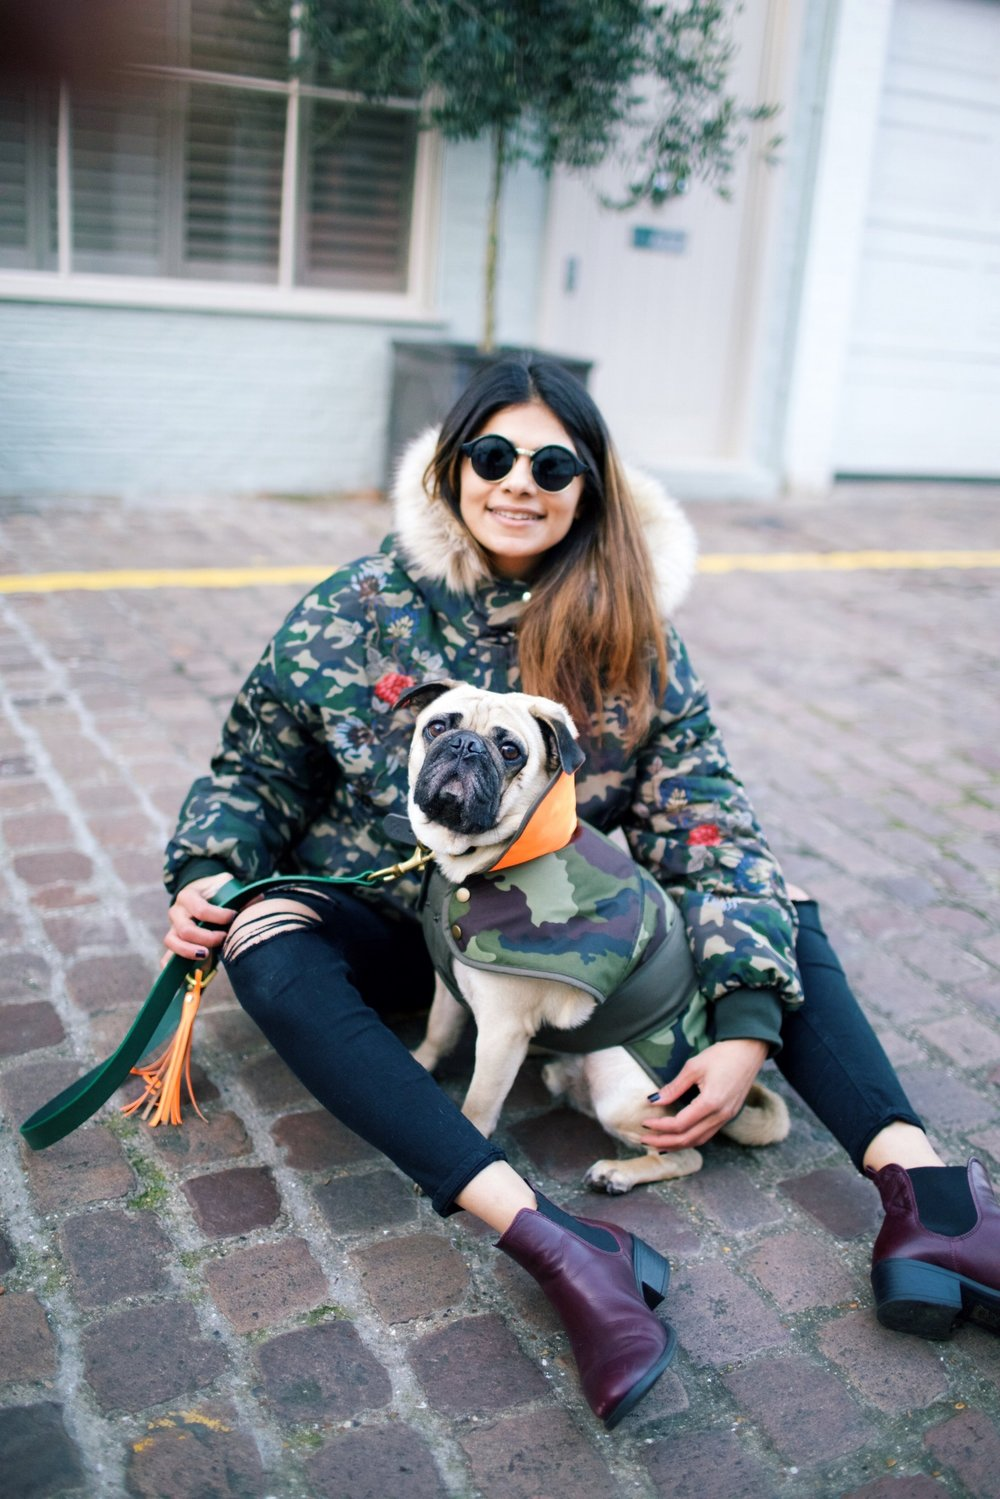 humanandhound-petfashionblog-dogfashionblog-pugswag-pugfashion-fashion-lifestyle-london-bestdogblog-topdogblog-humanandhoundstyle-twinning-springsummer2017-cooltrend-pufferjacket-neonaccents-cooldogjackets-cooldogaccessories-londonblog-coolestdogblog-dogfriendly